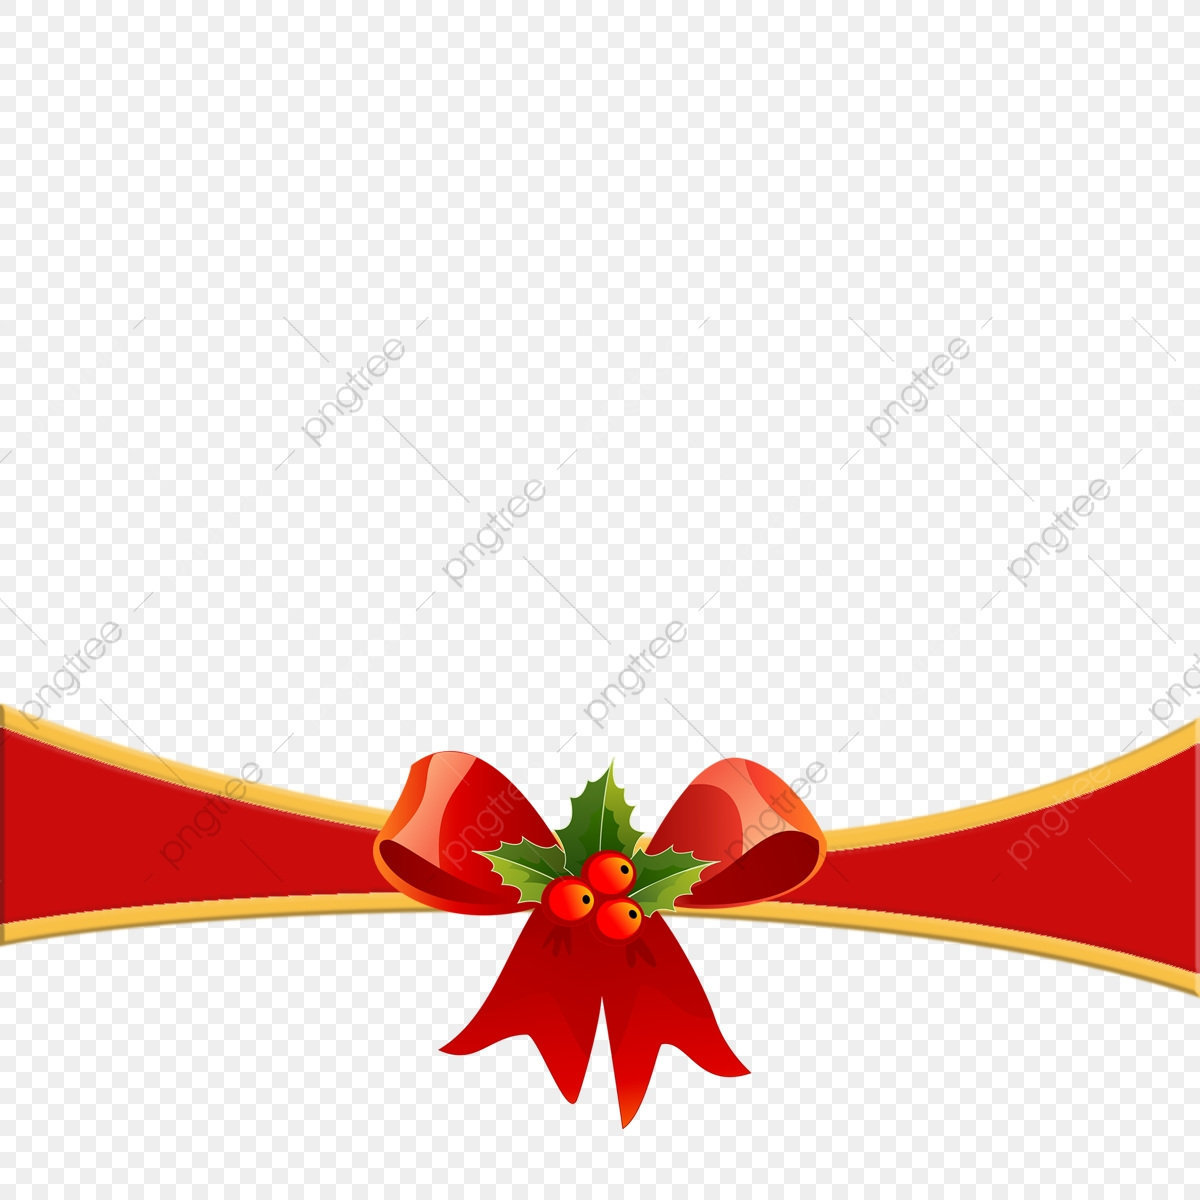 Transparent Christmas Ribbon With Red Bow Clipart, Christmas.